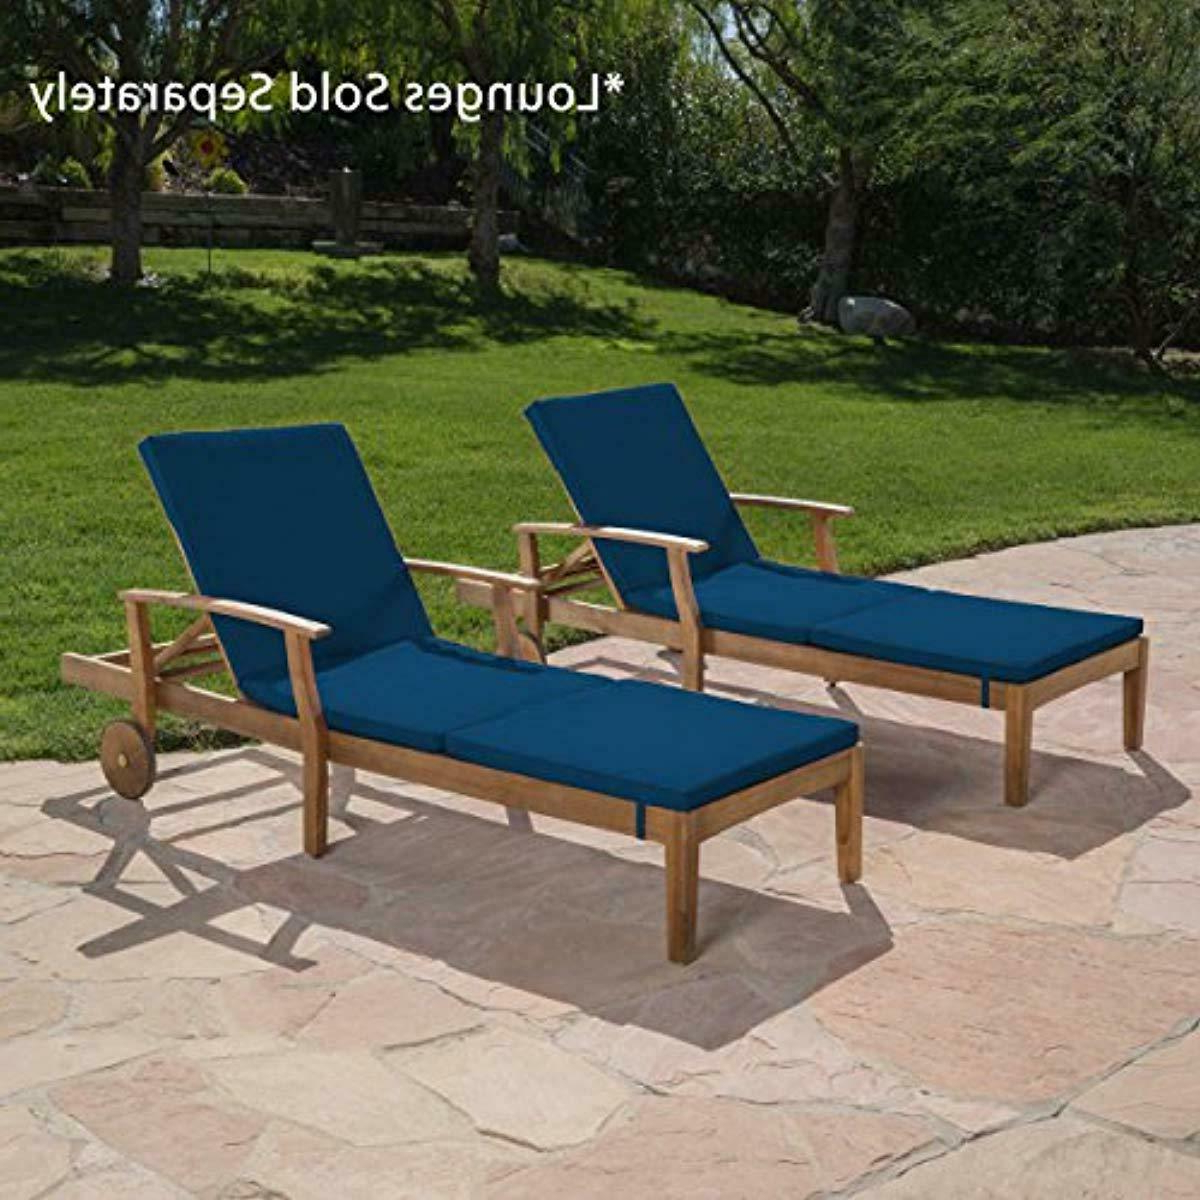 Salton Outdoor Aluminum Chaise Lounges Intended For Current Christopher Knight Home 303998 Jessica Outdoor Chaise Lounge Cushion (Set  Of 2), (View 17 of 25)